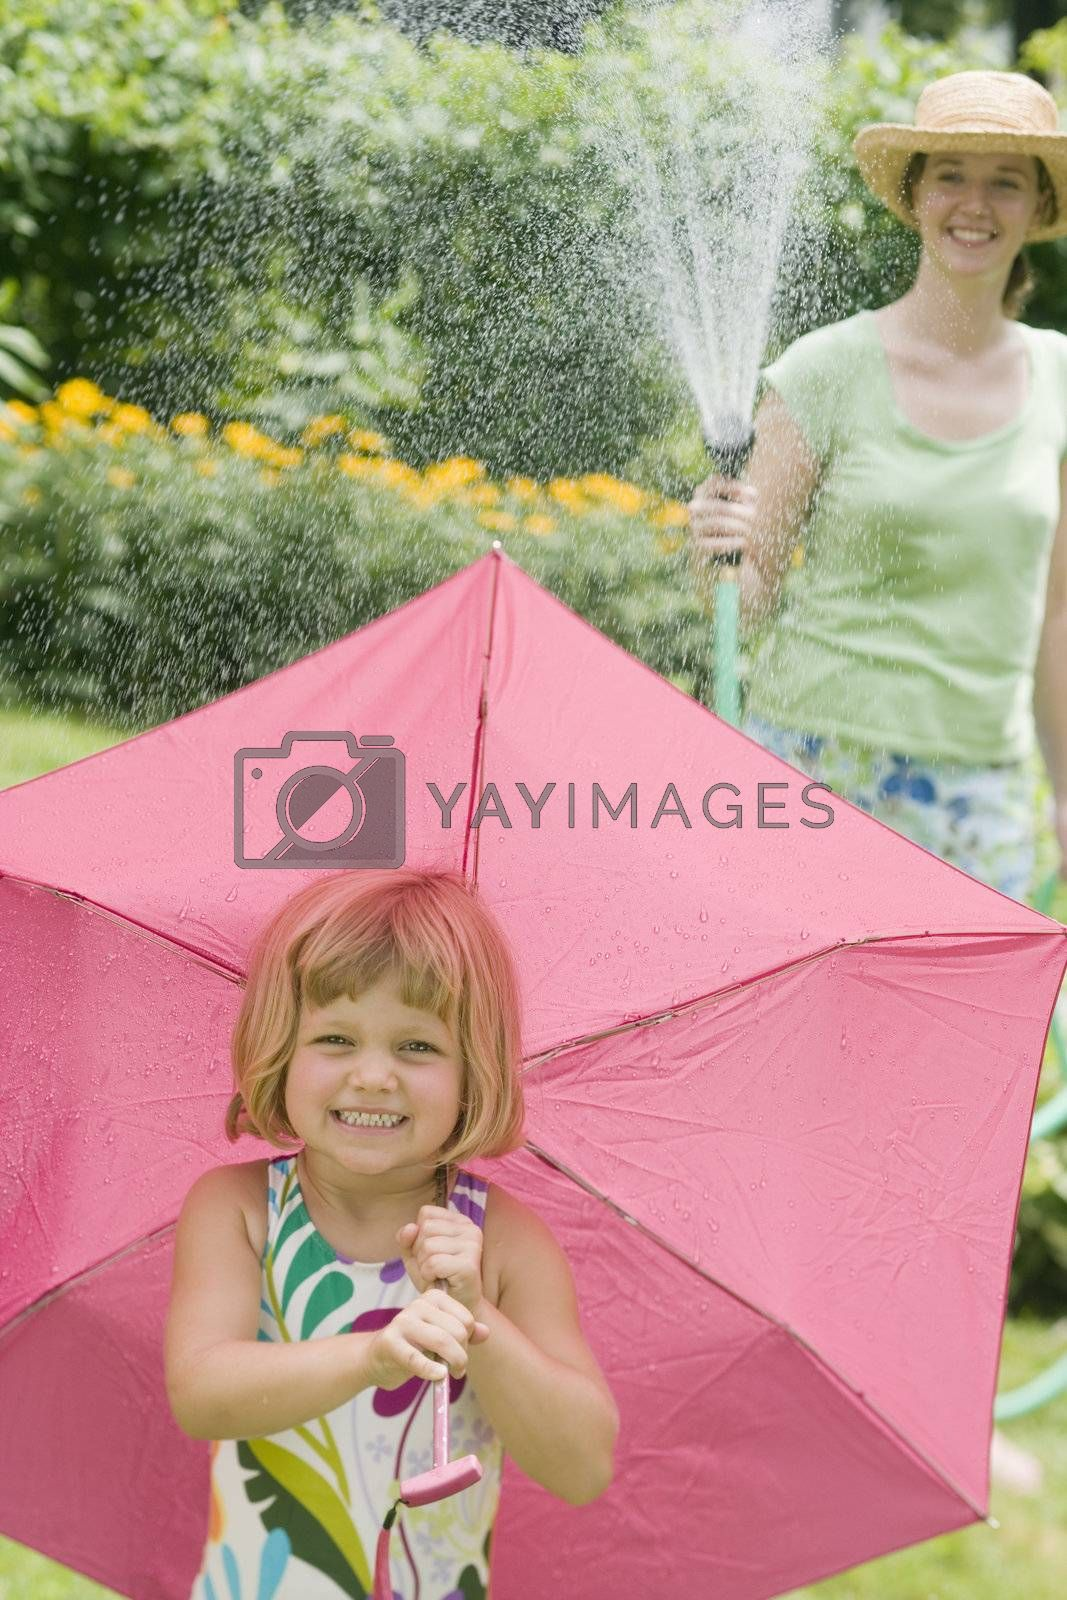 Smiling pretty woman spraying little girl with water from a garden hose in the Summertime